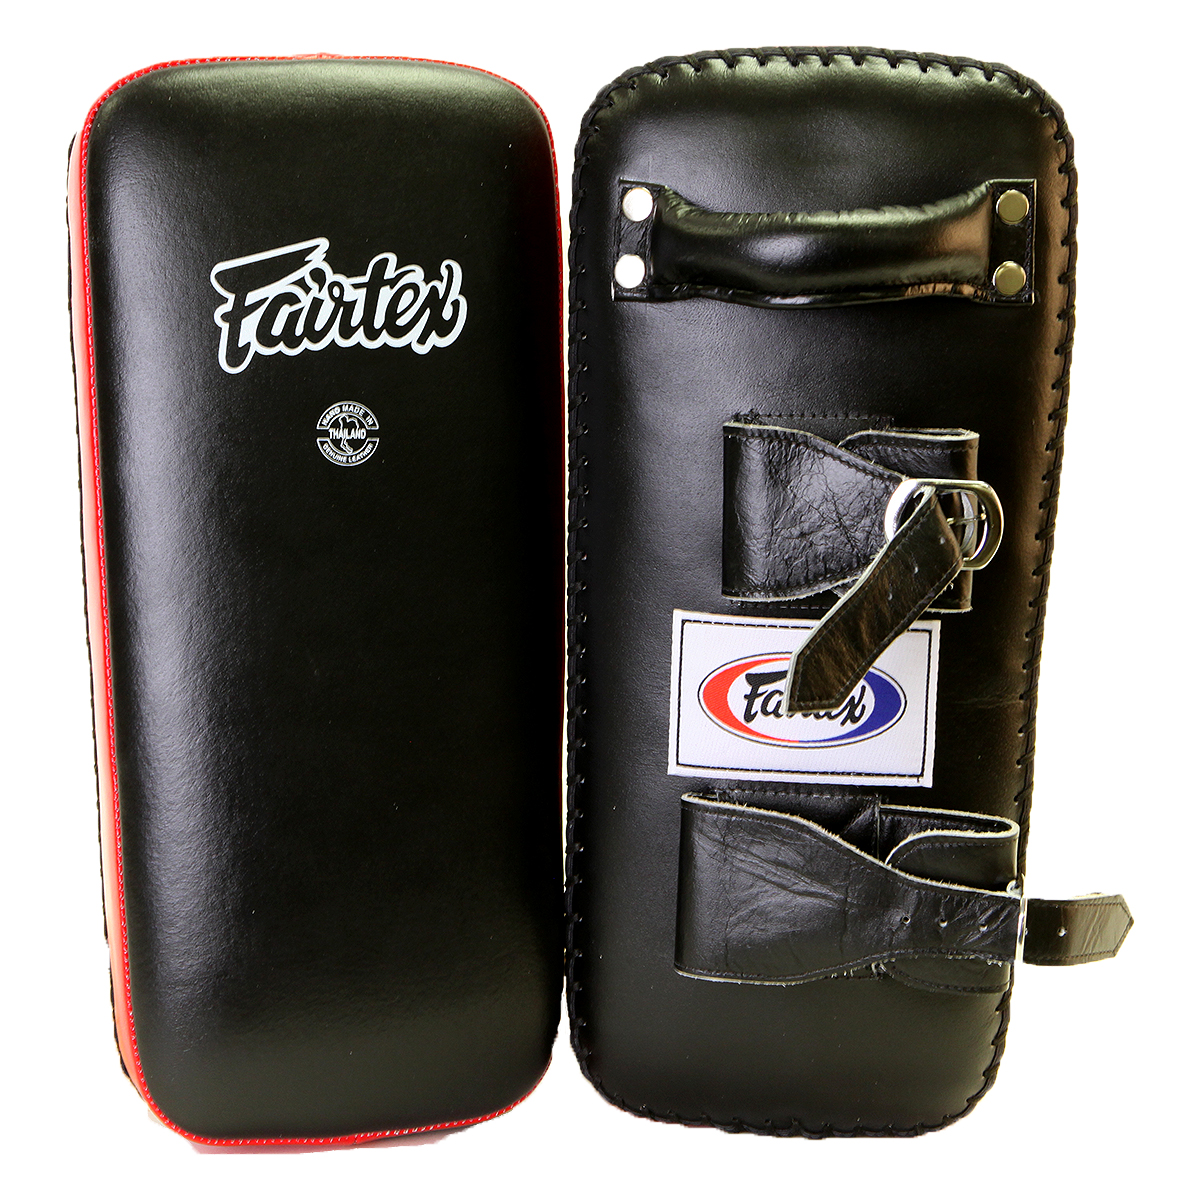 Fairtex Extra Thick Thai Kick Pads with Buckle - Black/Red